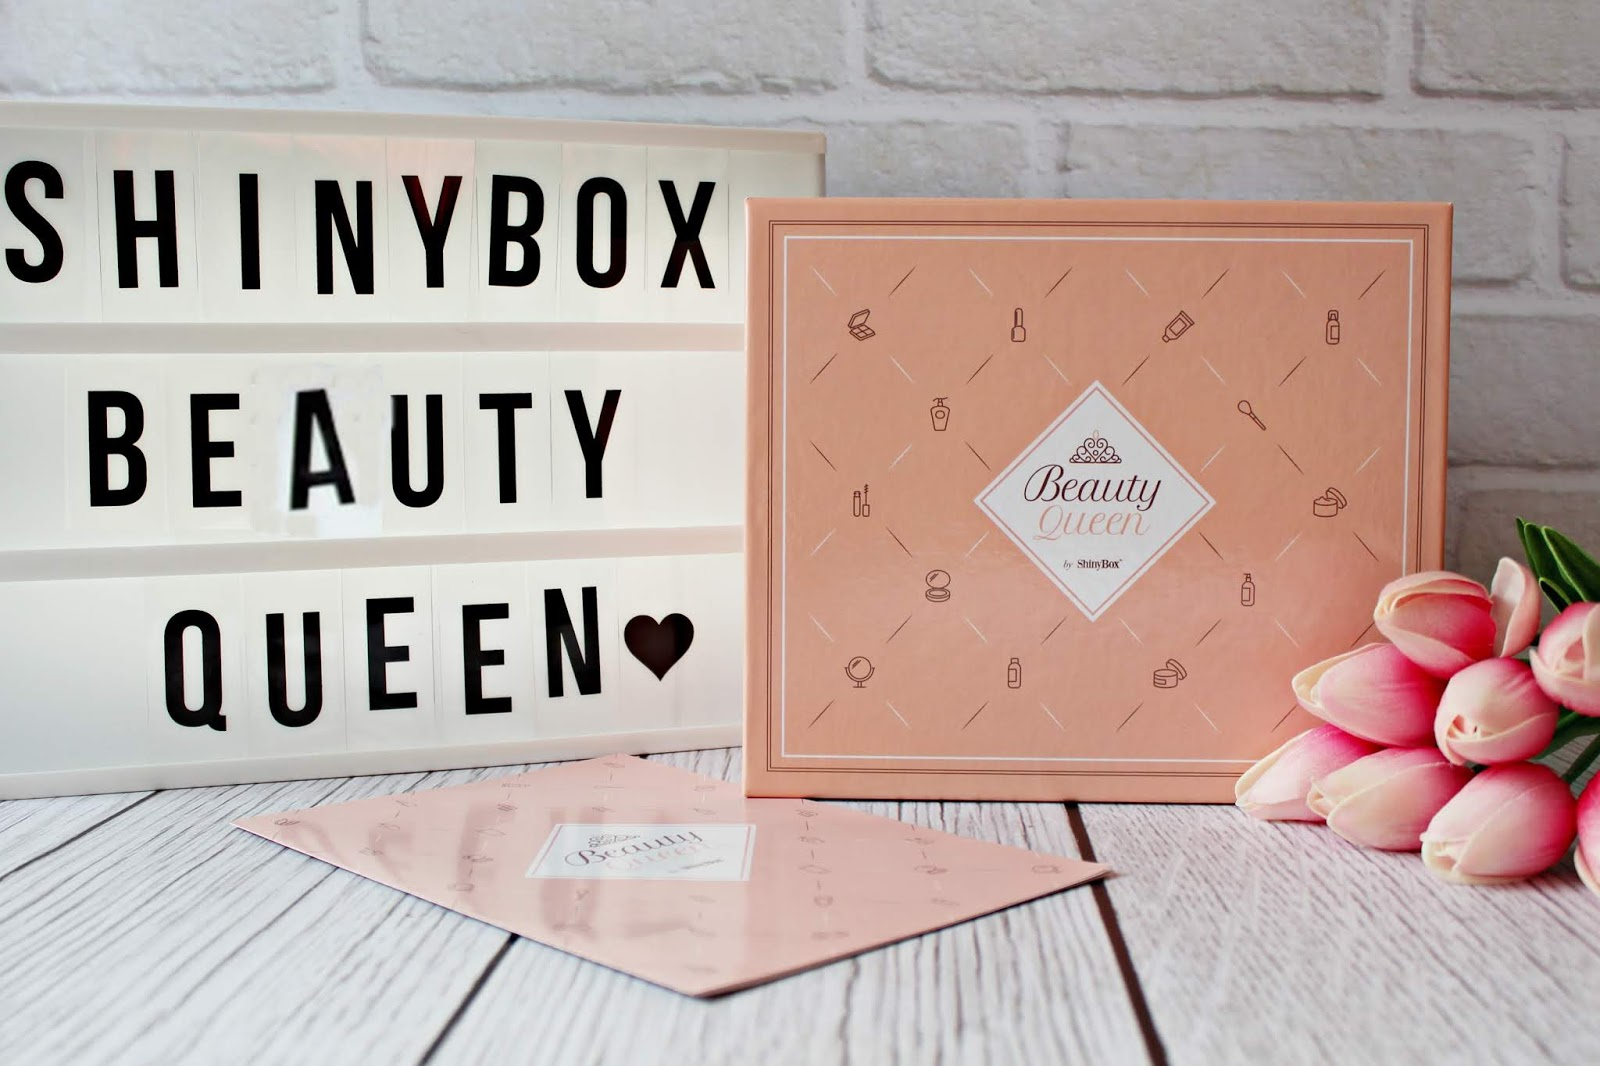 ShinyBox Beauty Queen - openbox marcowego pudełka - 2019